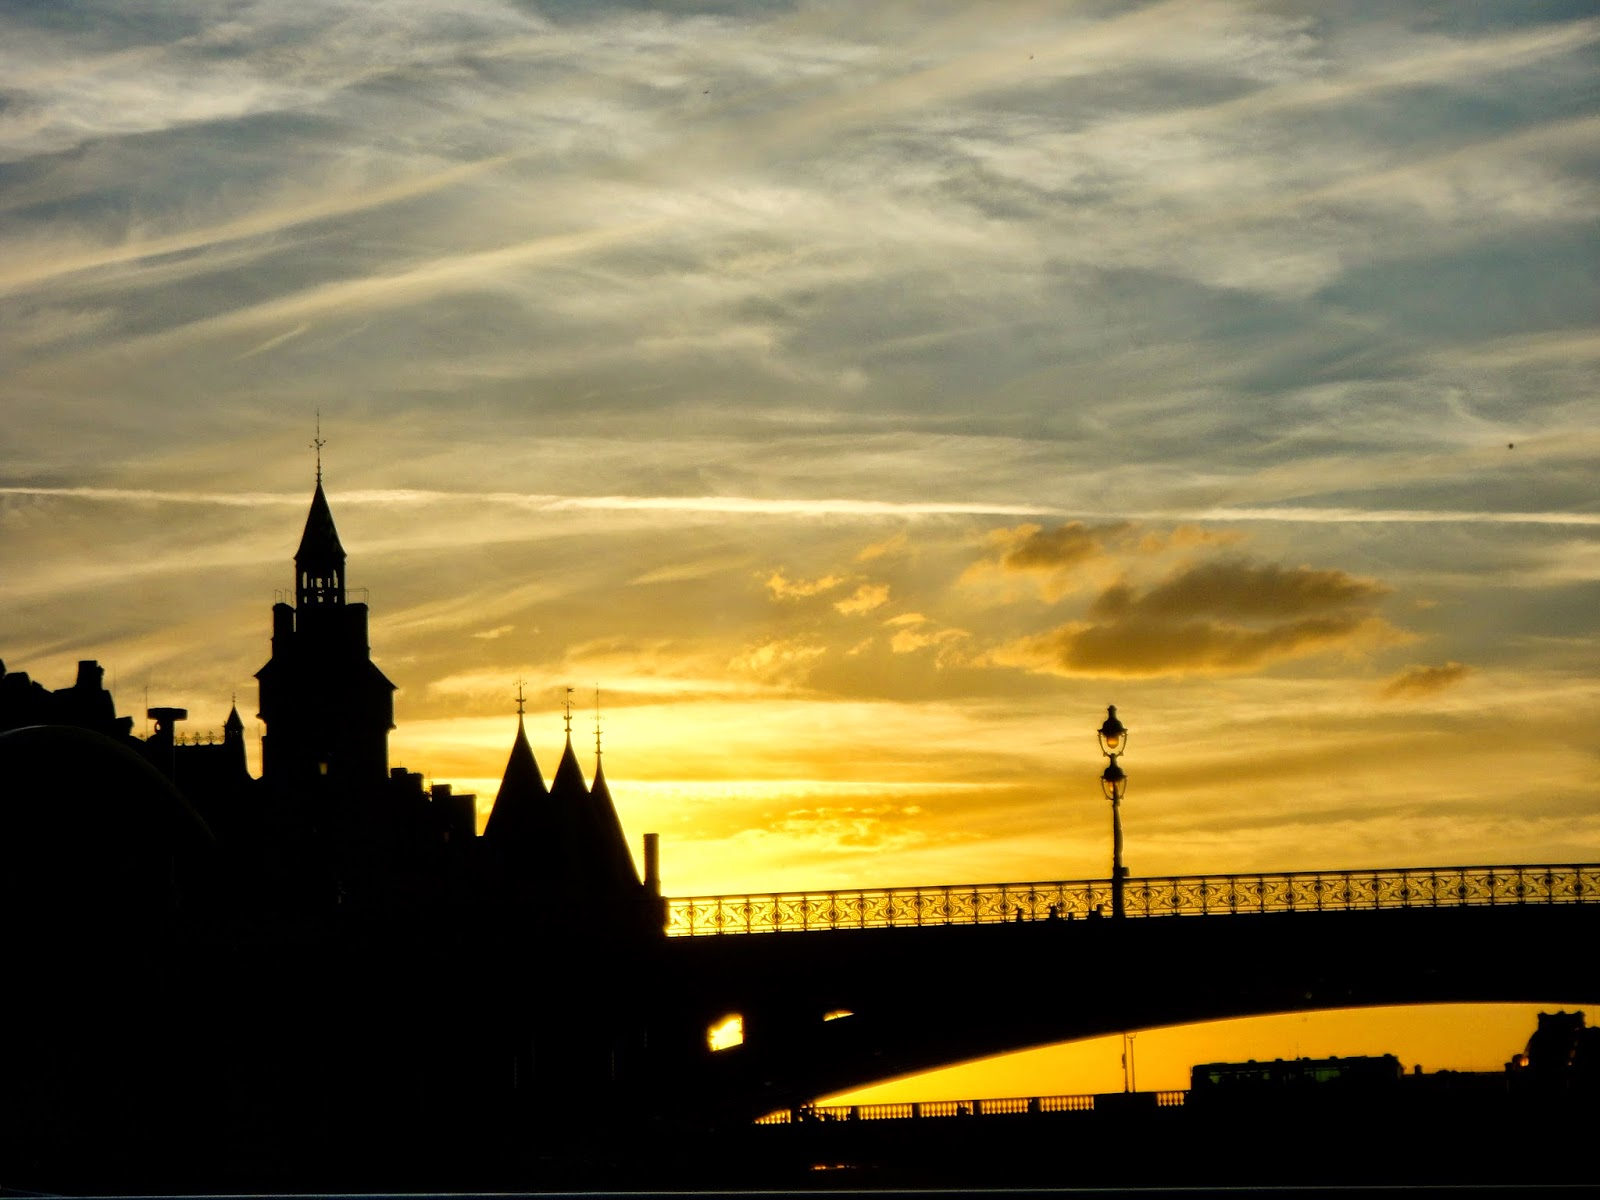 La Conciergerie at sunset from the River Seine, Paris